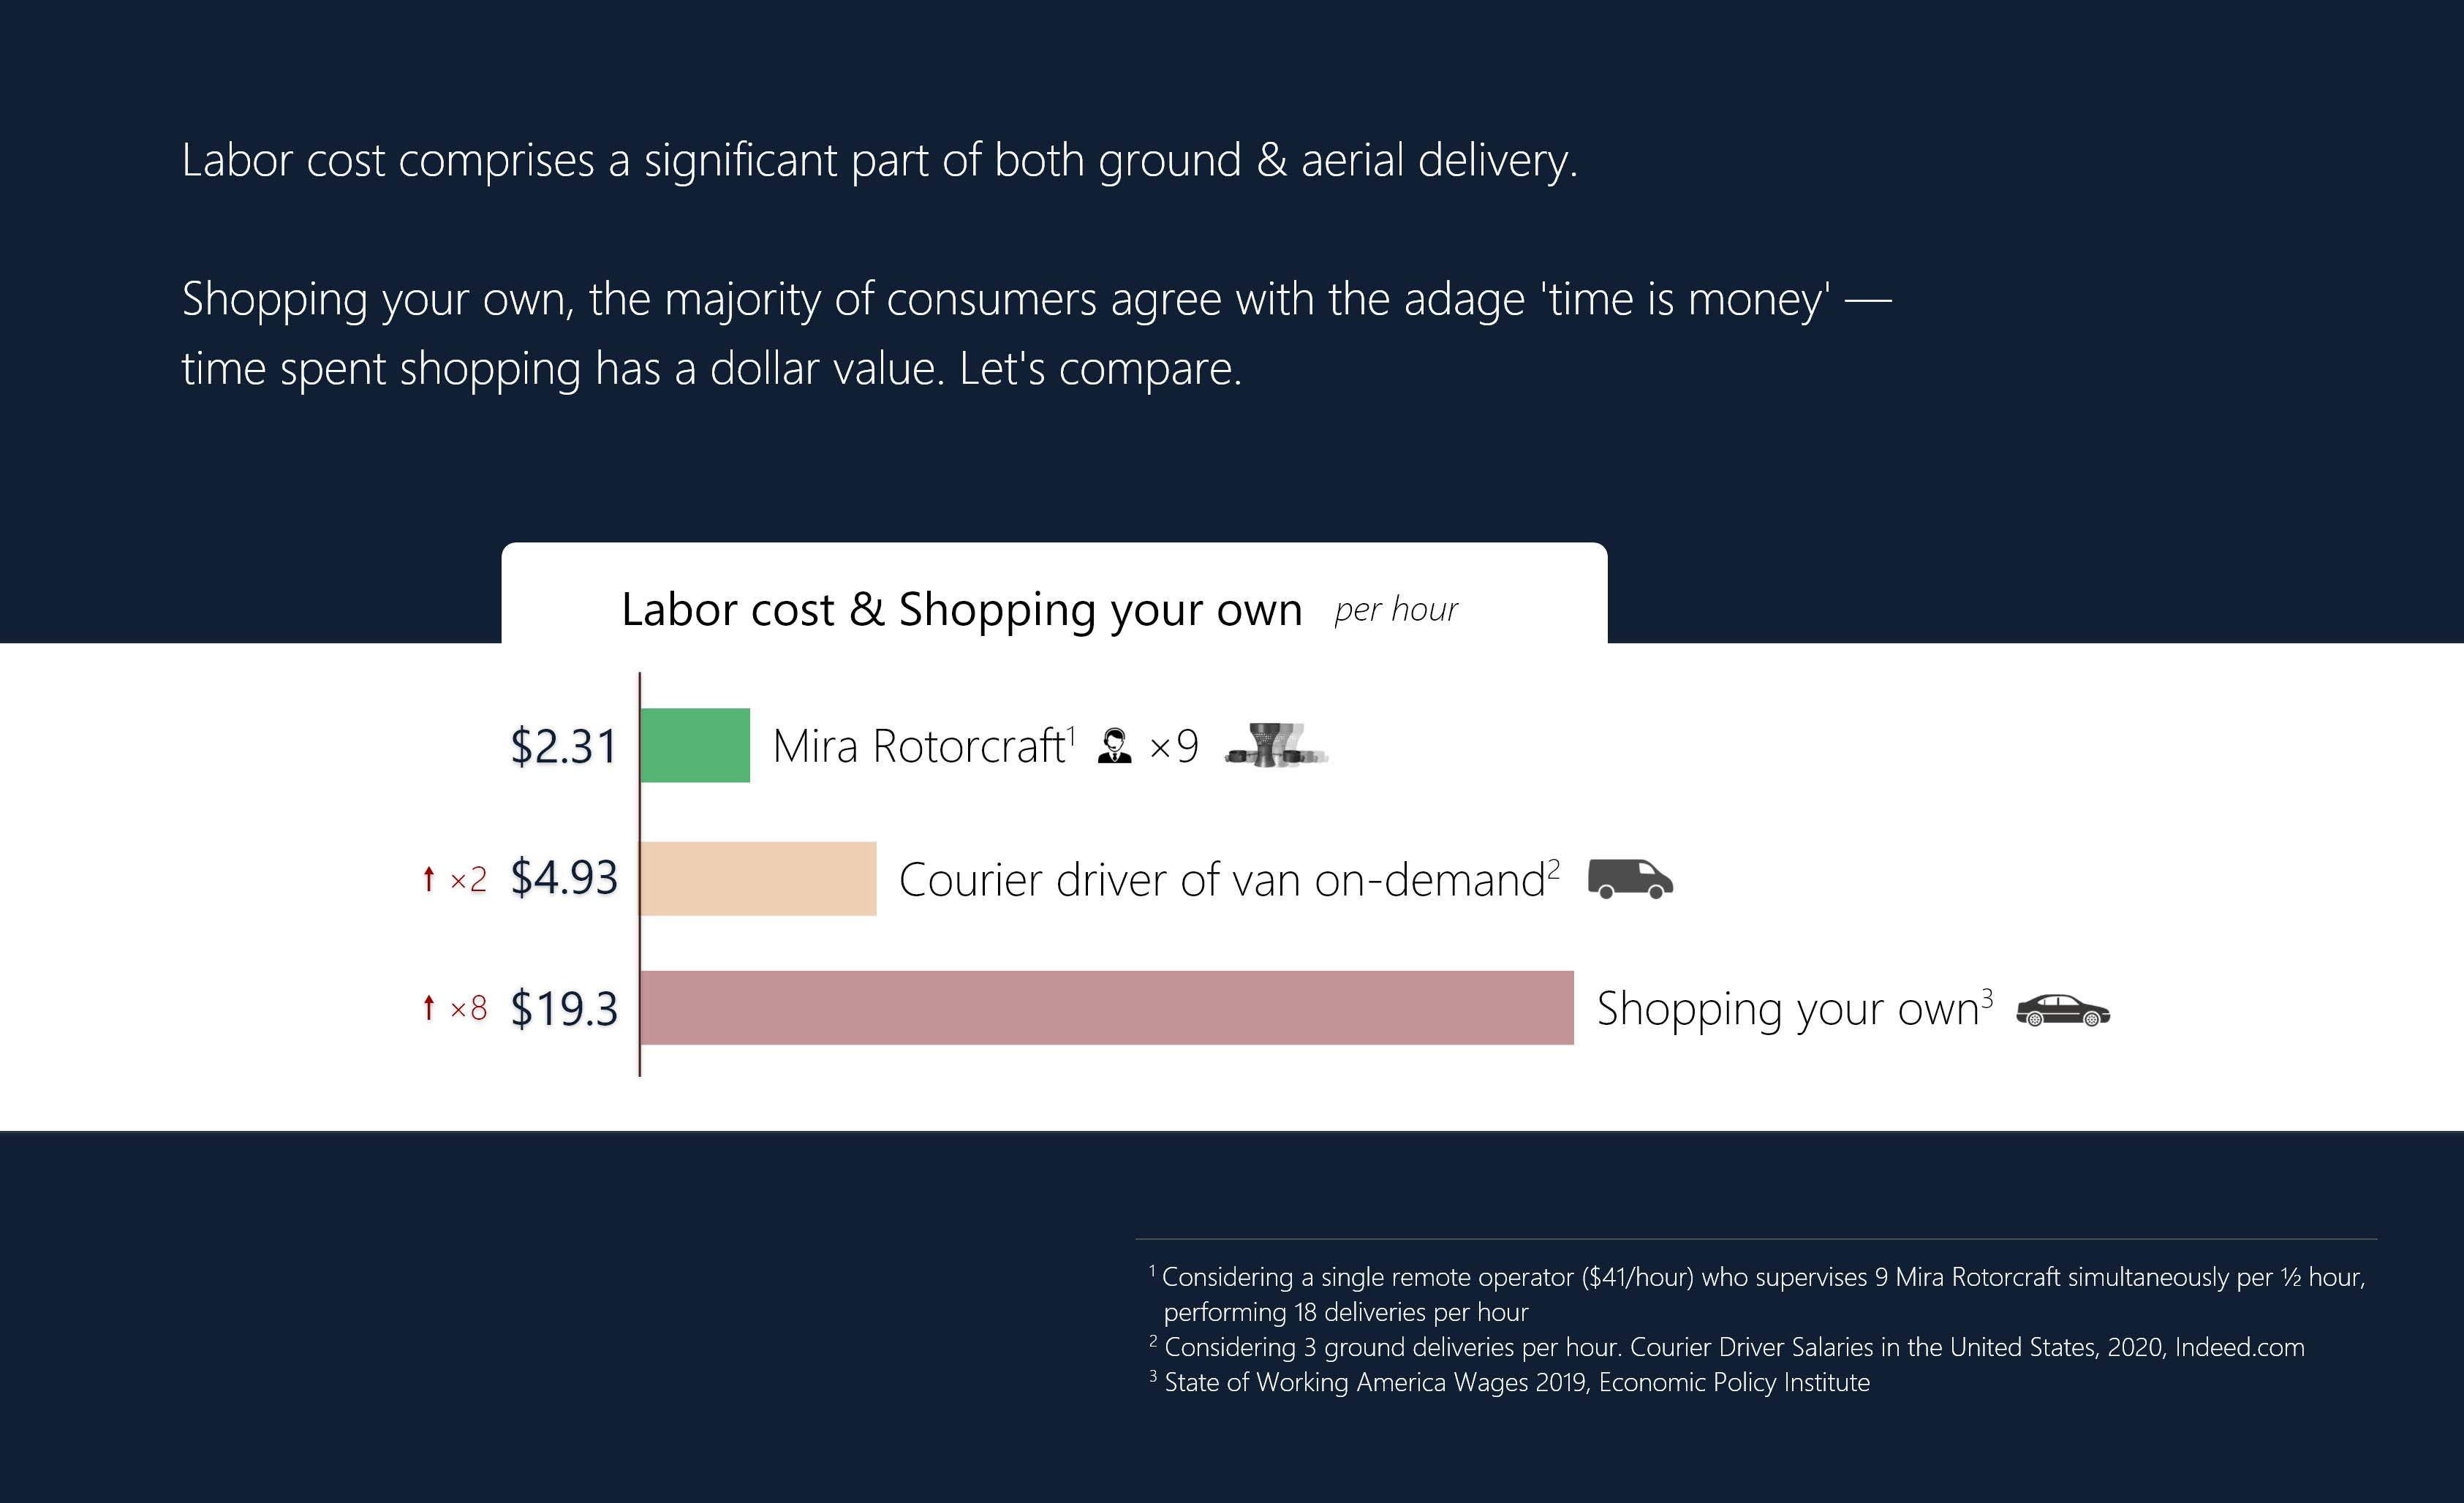 Labor cost comprises a significant part of both ground & aerial delivery. Shopping your own, the majority of consumers agree with the adage time is money — time spent shopping has a dollar value. Let's compare. Labor cost & Shopping your own per hour: $2.31 Mira Rotorcraft (Considering a single remote operator ($41/hour) who supervises 9 Mira Rotorcraft simultaneously per ½ hour, performing 18 deliveries per hour); $4.93 Courier driver of van on-demand; $19.3 Shopping your own.